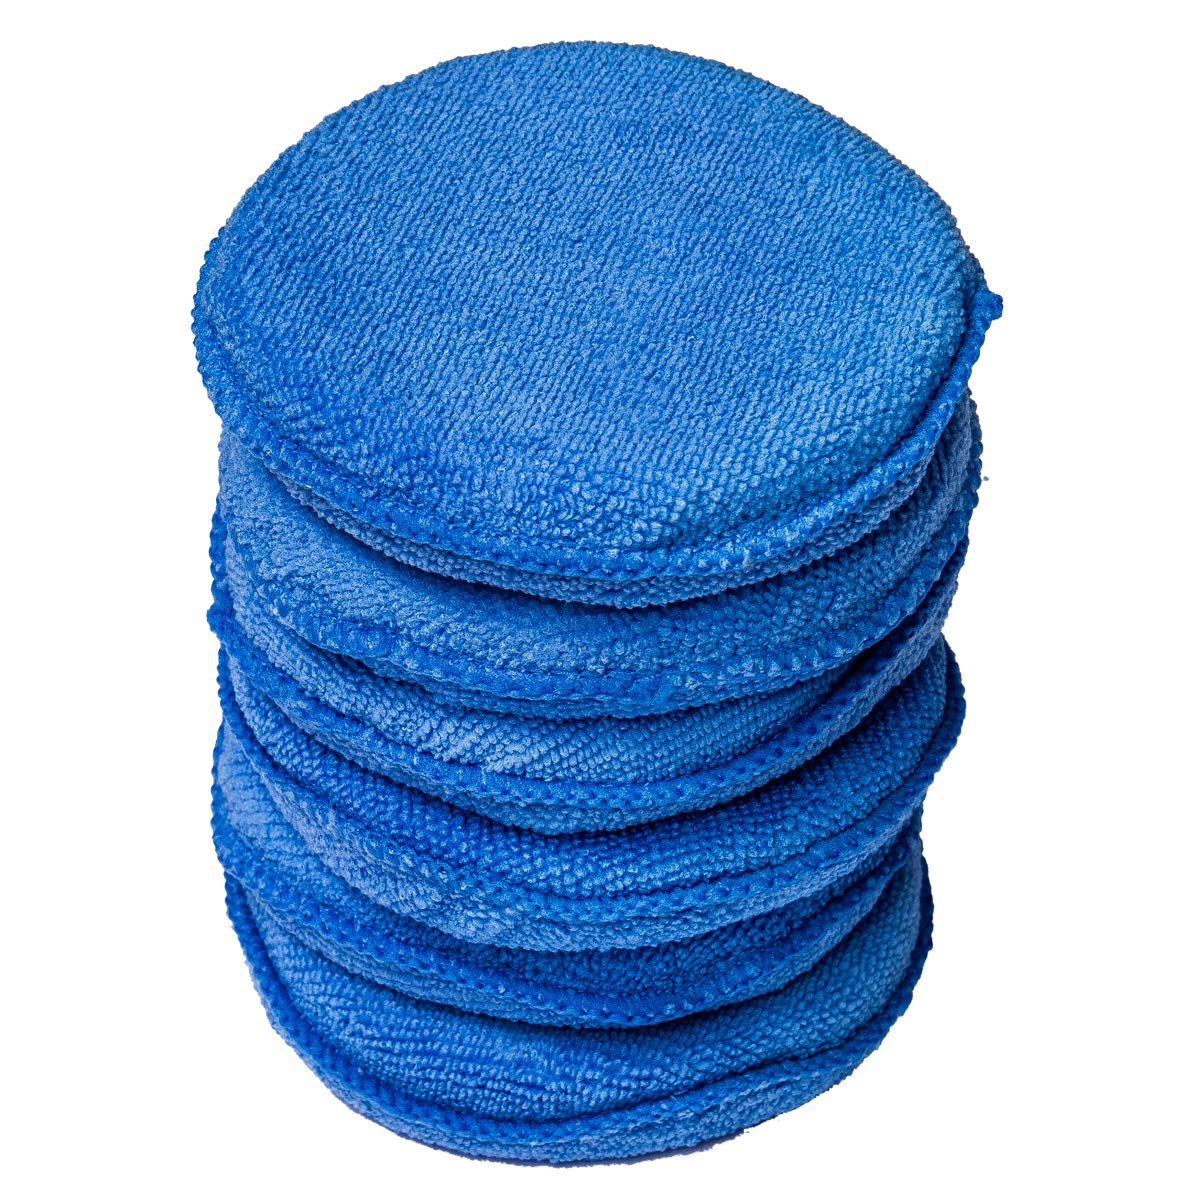 WildAuto Mikrofaser Wachs Applikator Auto Schaum Wachs Schwamm Applikator Pads - Blau (5' Durchmesser, 4 STK) UK-Car wax applicator -4 Pcs